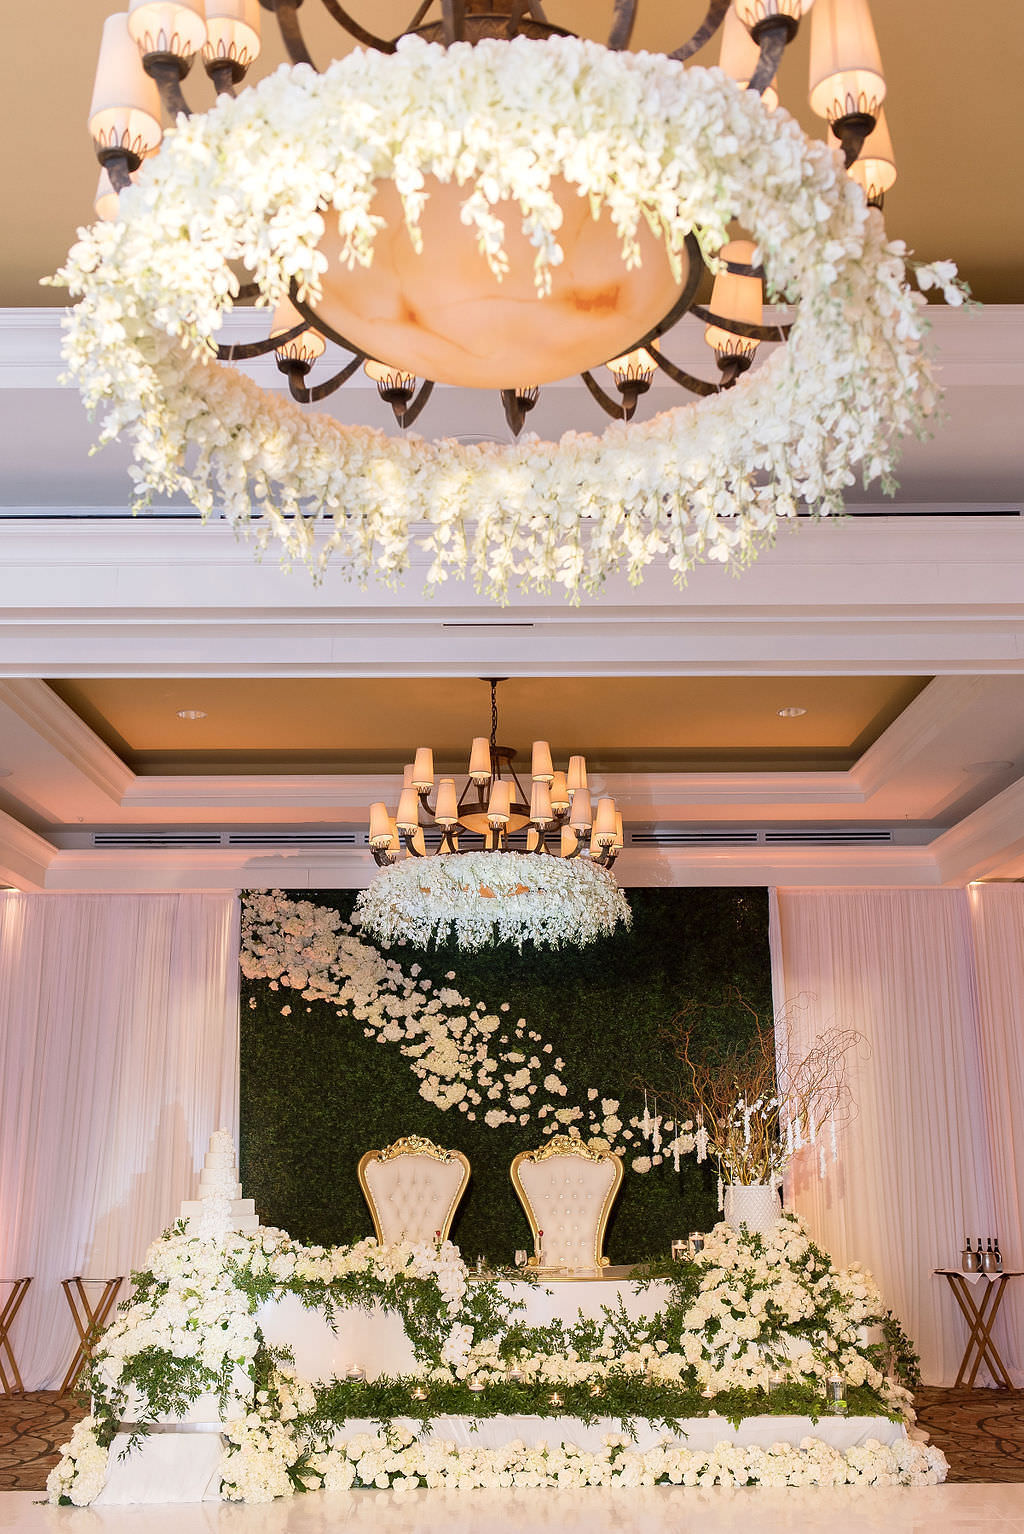 INSTAGRAM SWIPE Elegant Stunning Classic Wedding Reception Decor, White Flowers Hanging From Chandelier, Sweetheart Table with Victorian Style Gold and Ivory Bride and Groom Chairs, Greenery and Lush White, Ivory Florals on Sweetheart Table, Greenery and White and Ivory Cascading Floral Backdrop and White Draping   Tampa Bay Wedding Photographer Kristen Marie Photography   Clearwater Beach Wedding Venue Sandpearl Resort   Wedding Florist, Rentals Linens, Lighting and Draping Gabro Event Services   Wedding Day of Coordinator Special Moments Event Planning